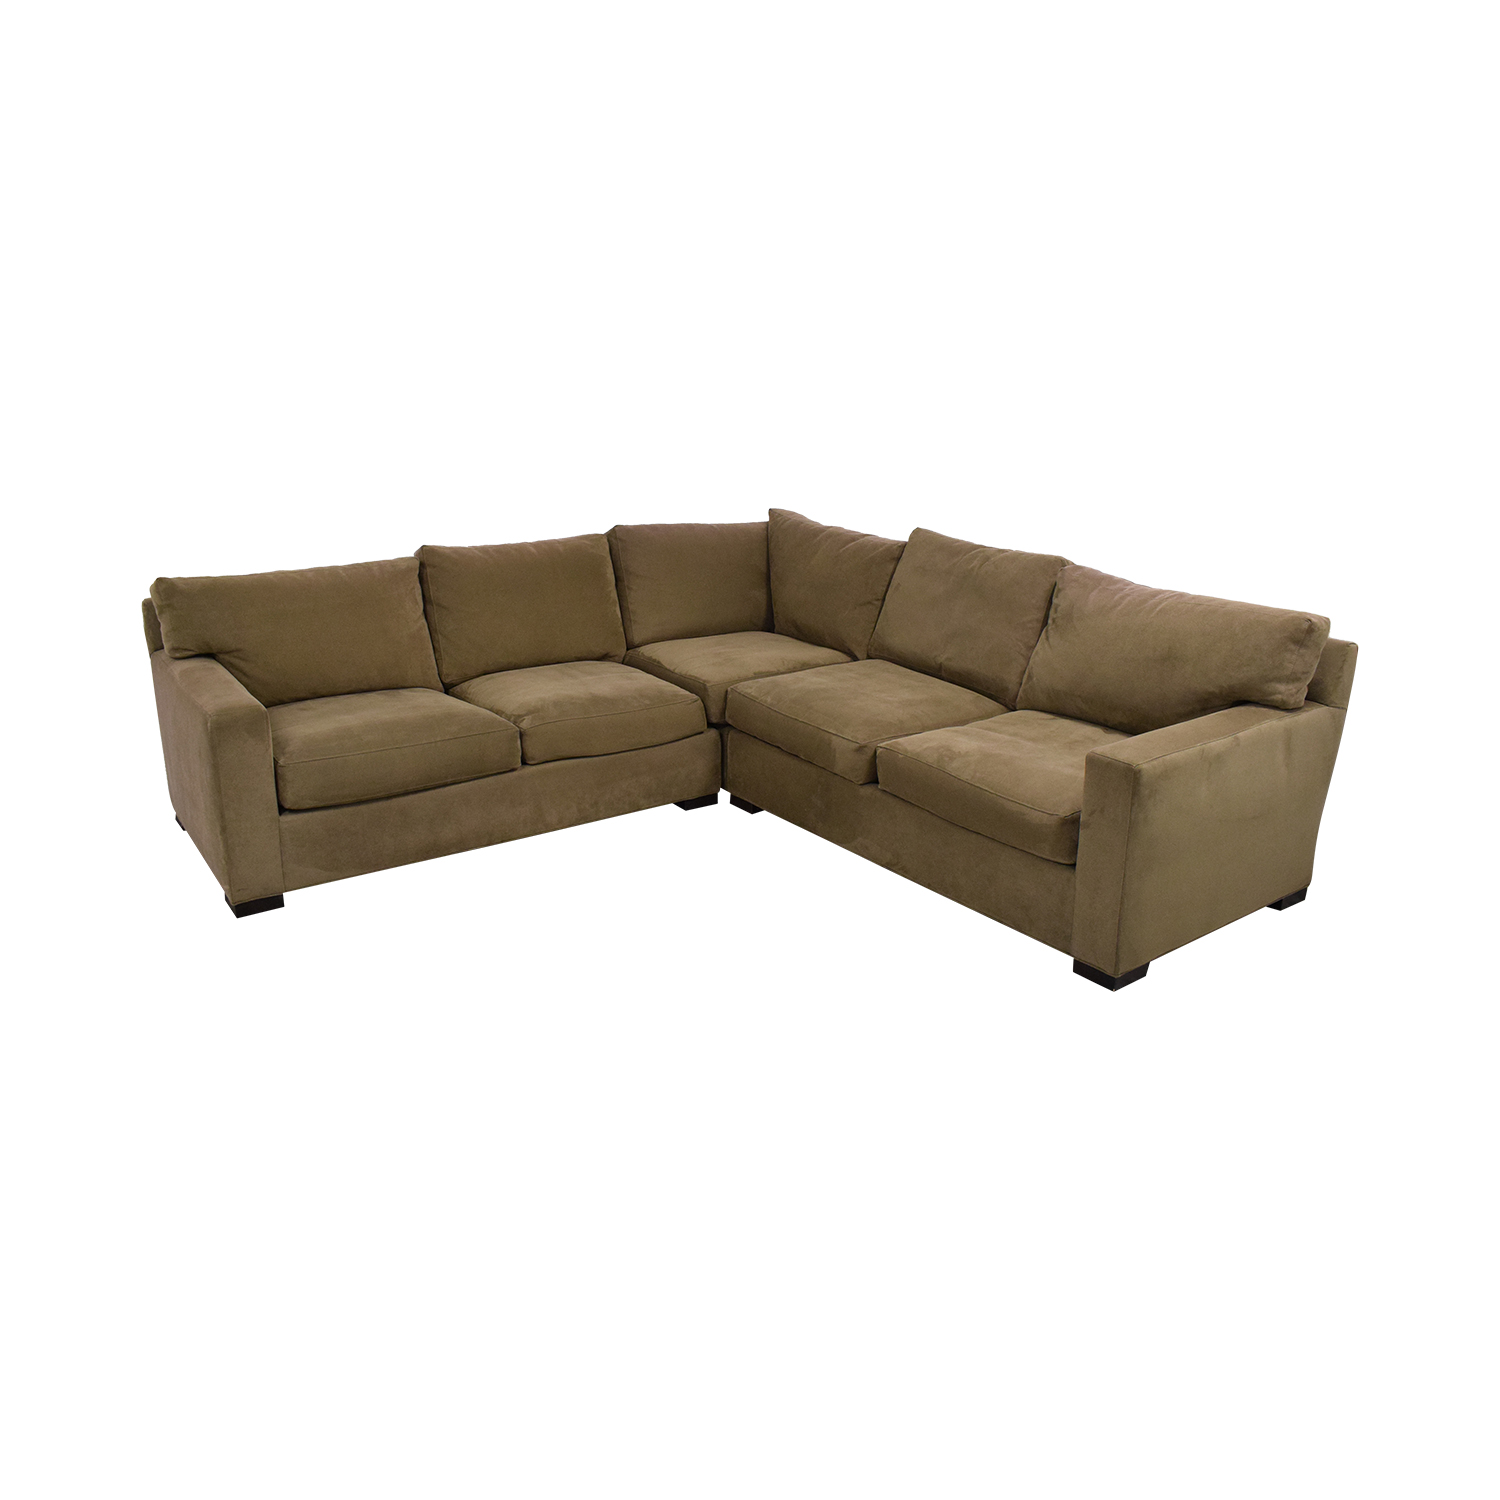 Crate & Barrel Crate & Barrel Axis II 3-Piece Sectional Sofa discount